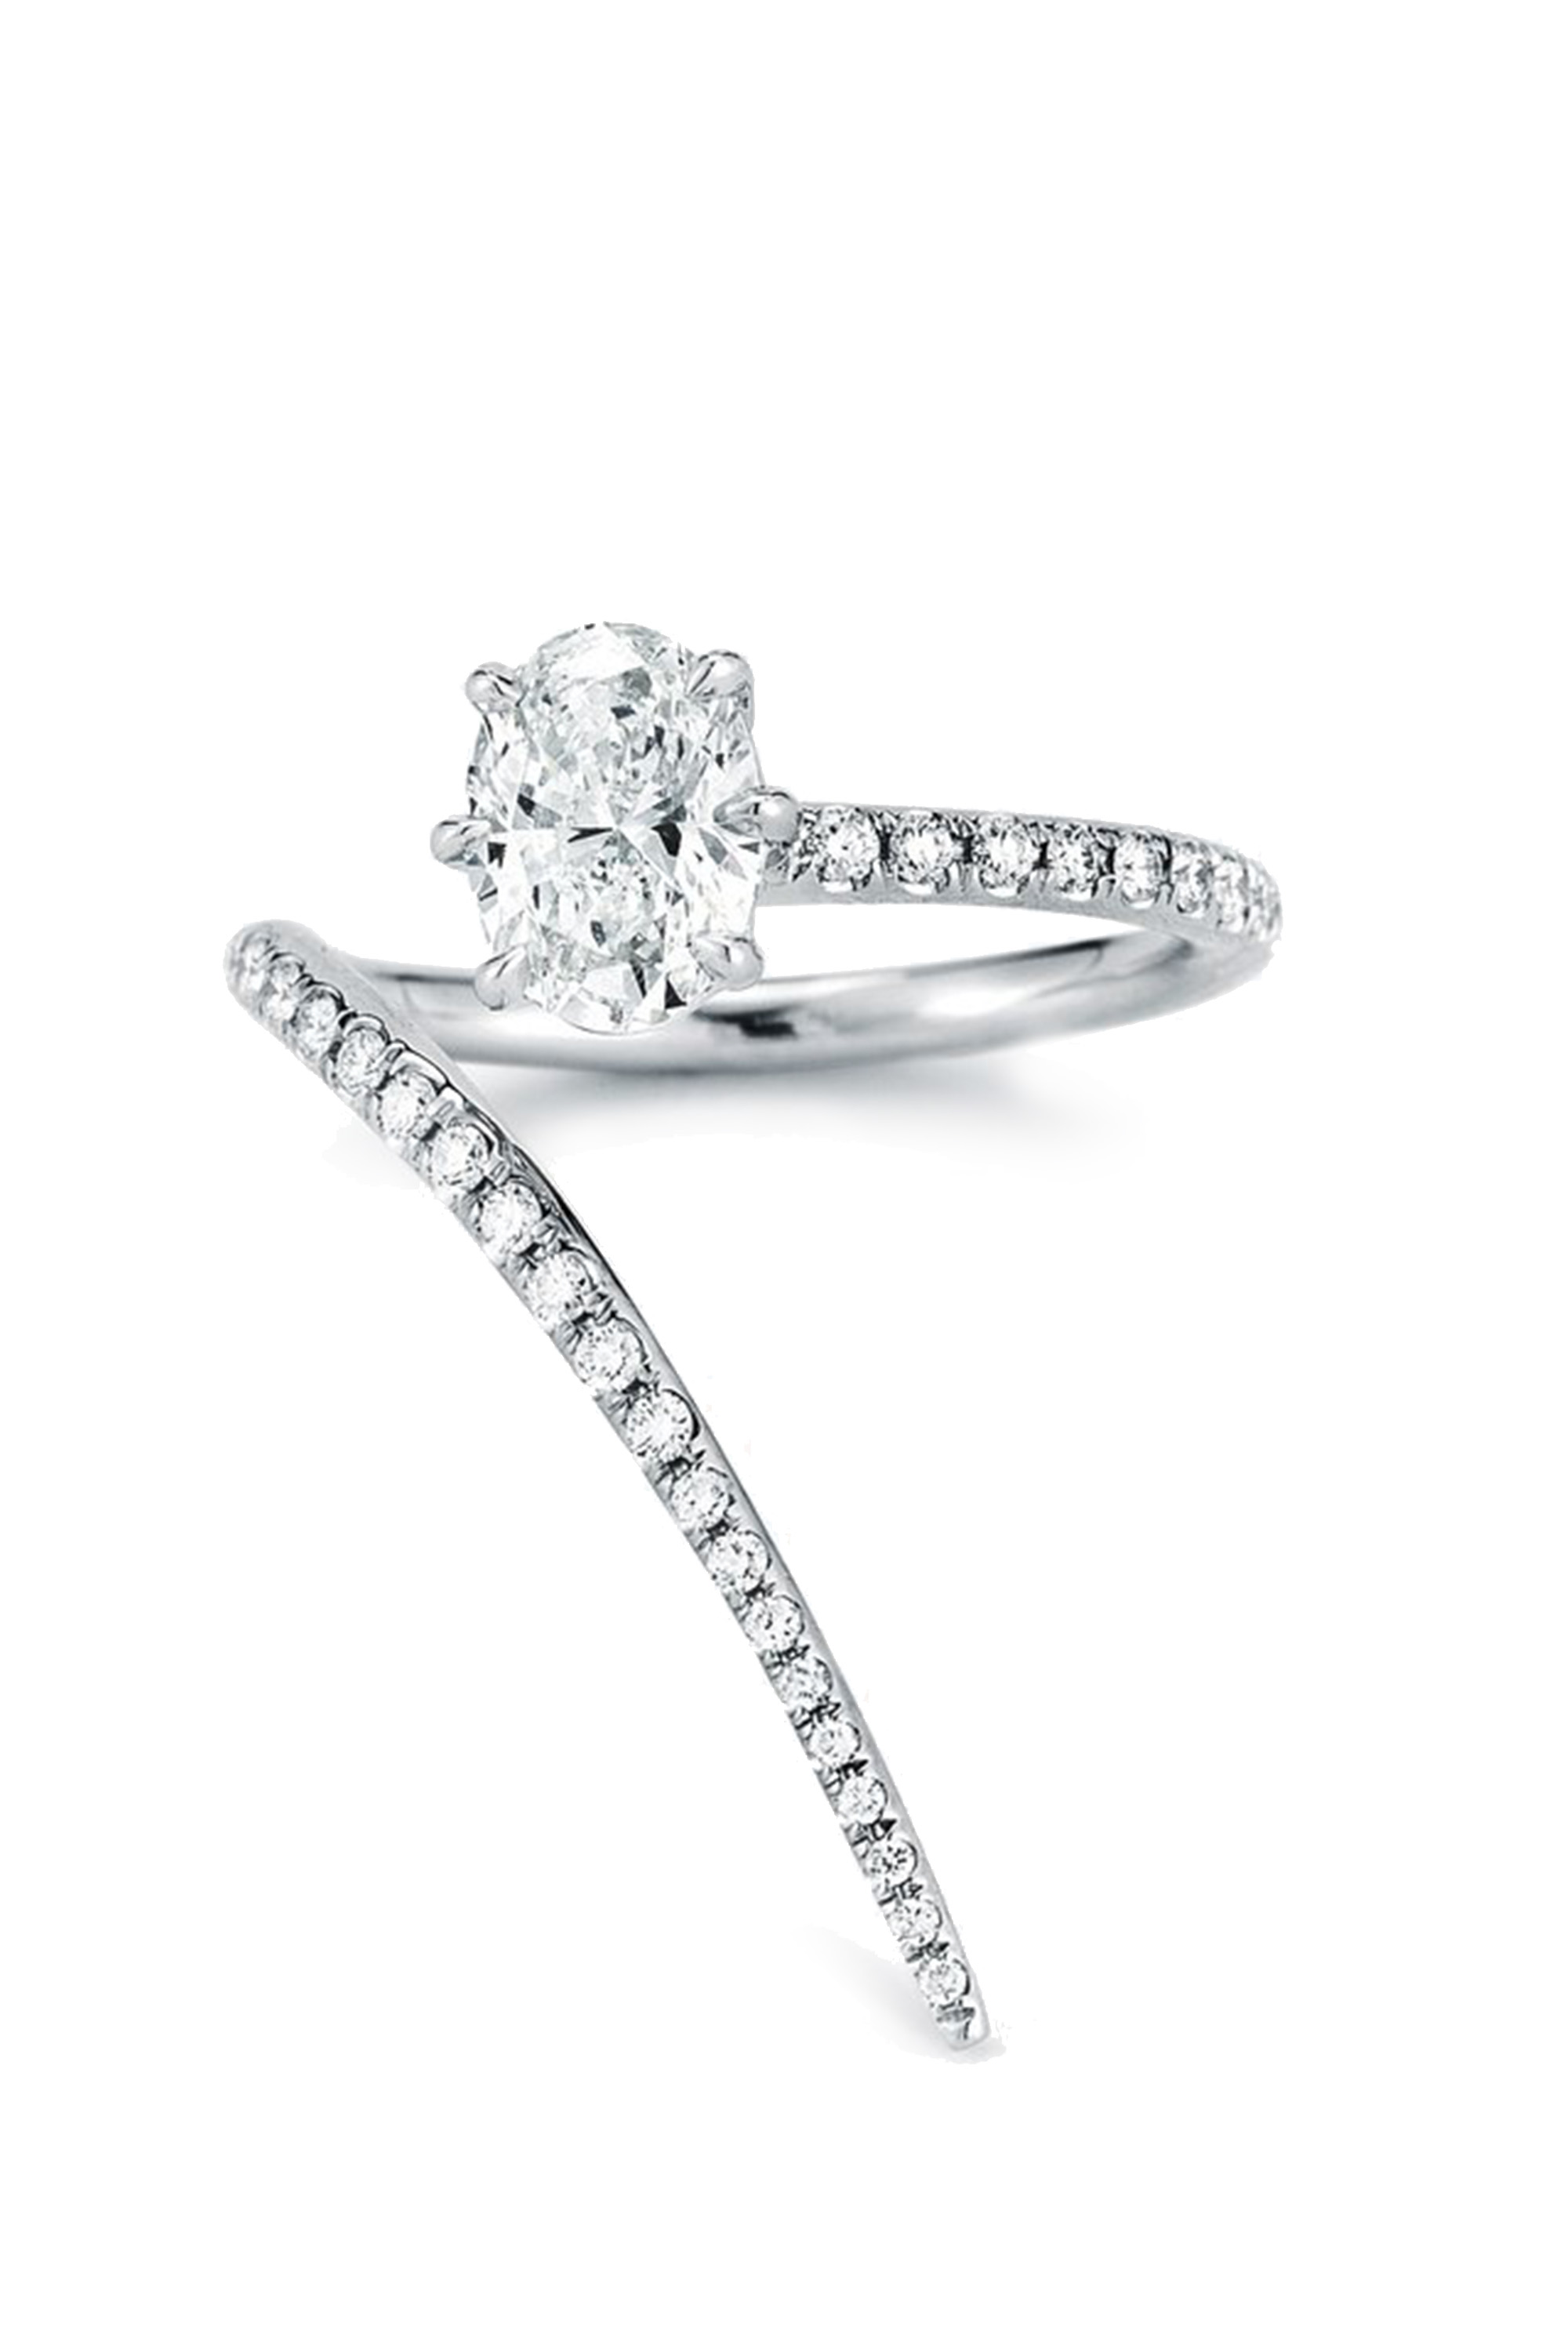 27 Unique Engagement Rings